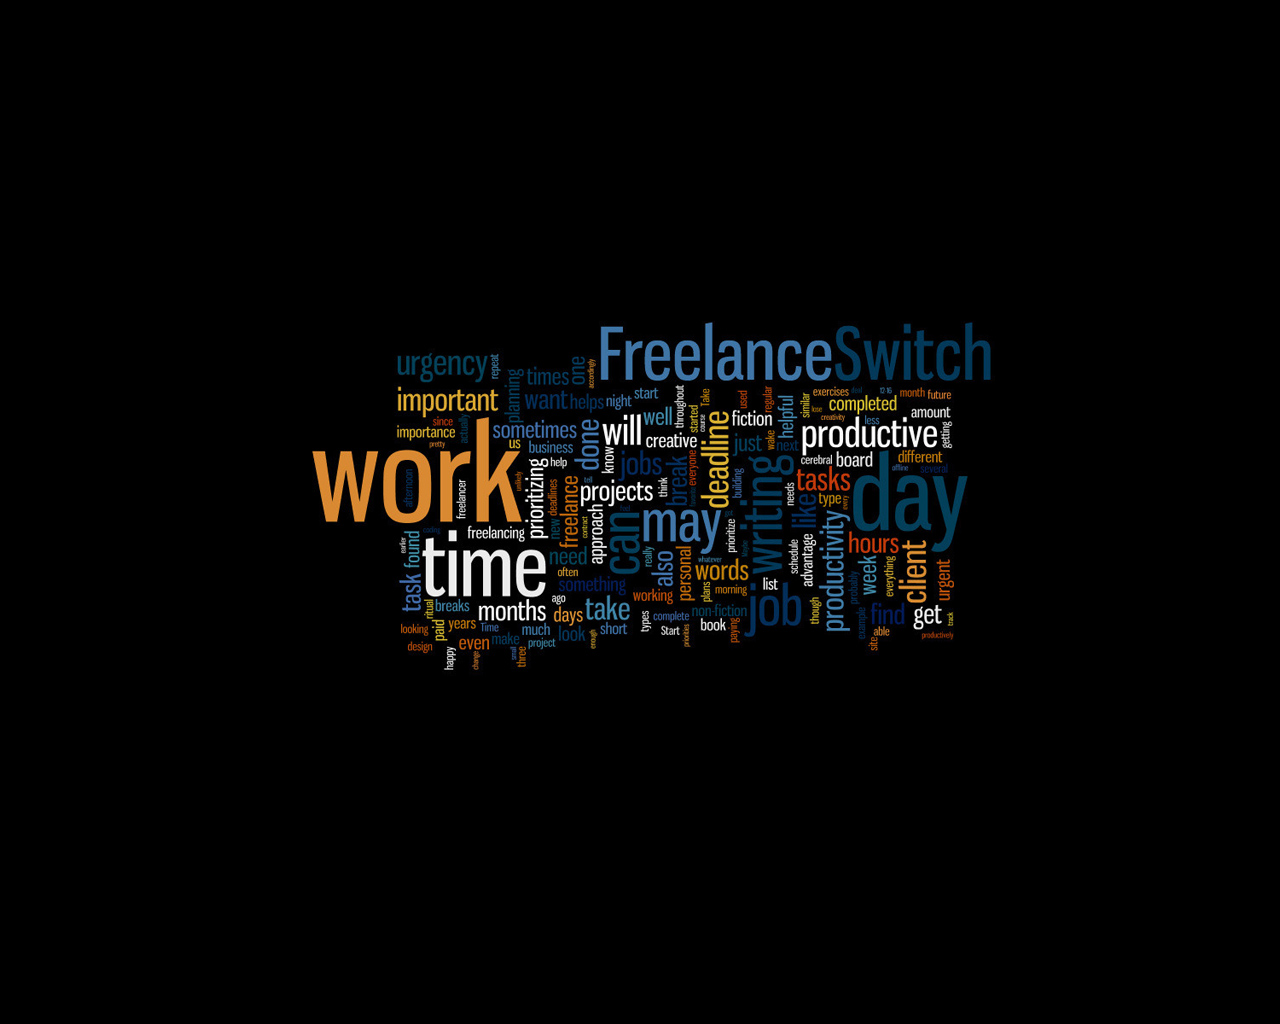 freelance-switch